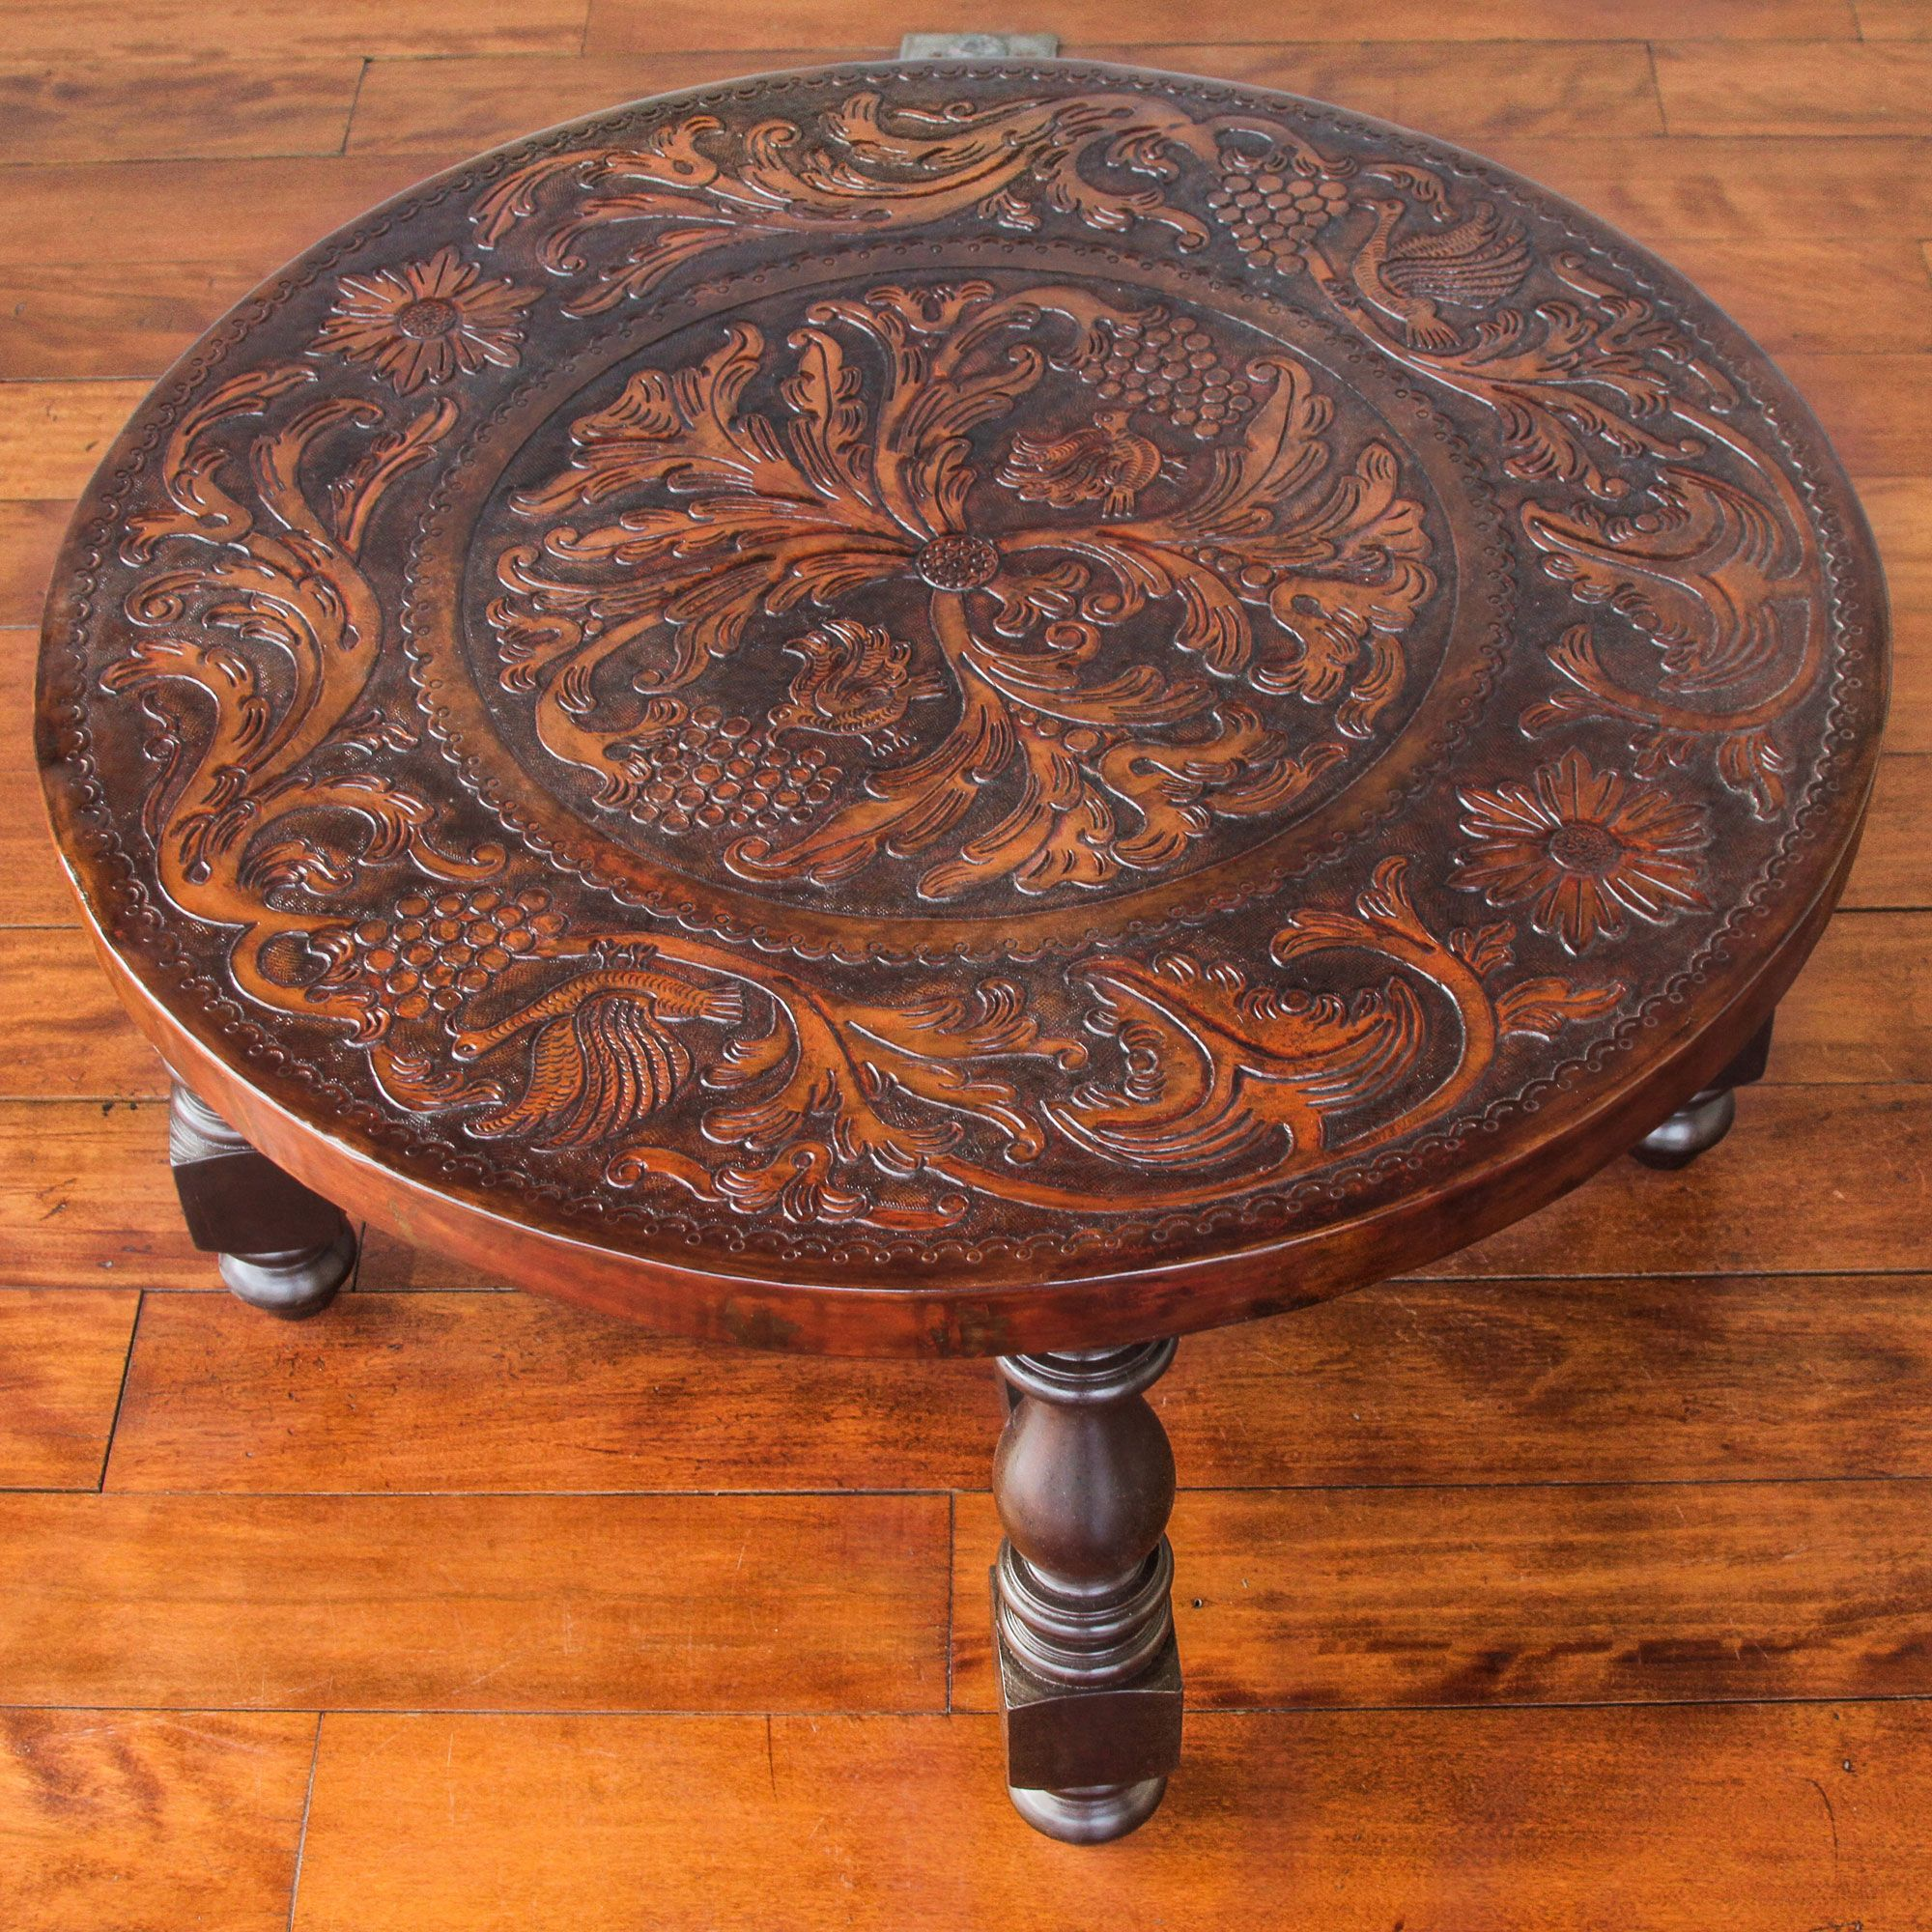 Mohena Wood And Leather Circular Coffee Table Vineyard Birds Circular Coffee Table Round Wood Coffee Table Coffee Table [ 2000 x 2000 Pixel ]